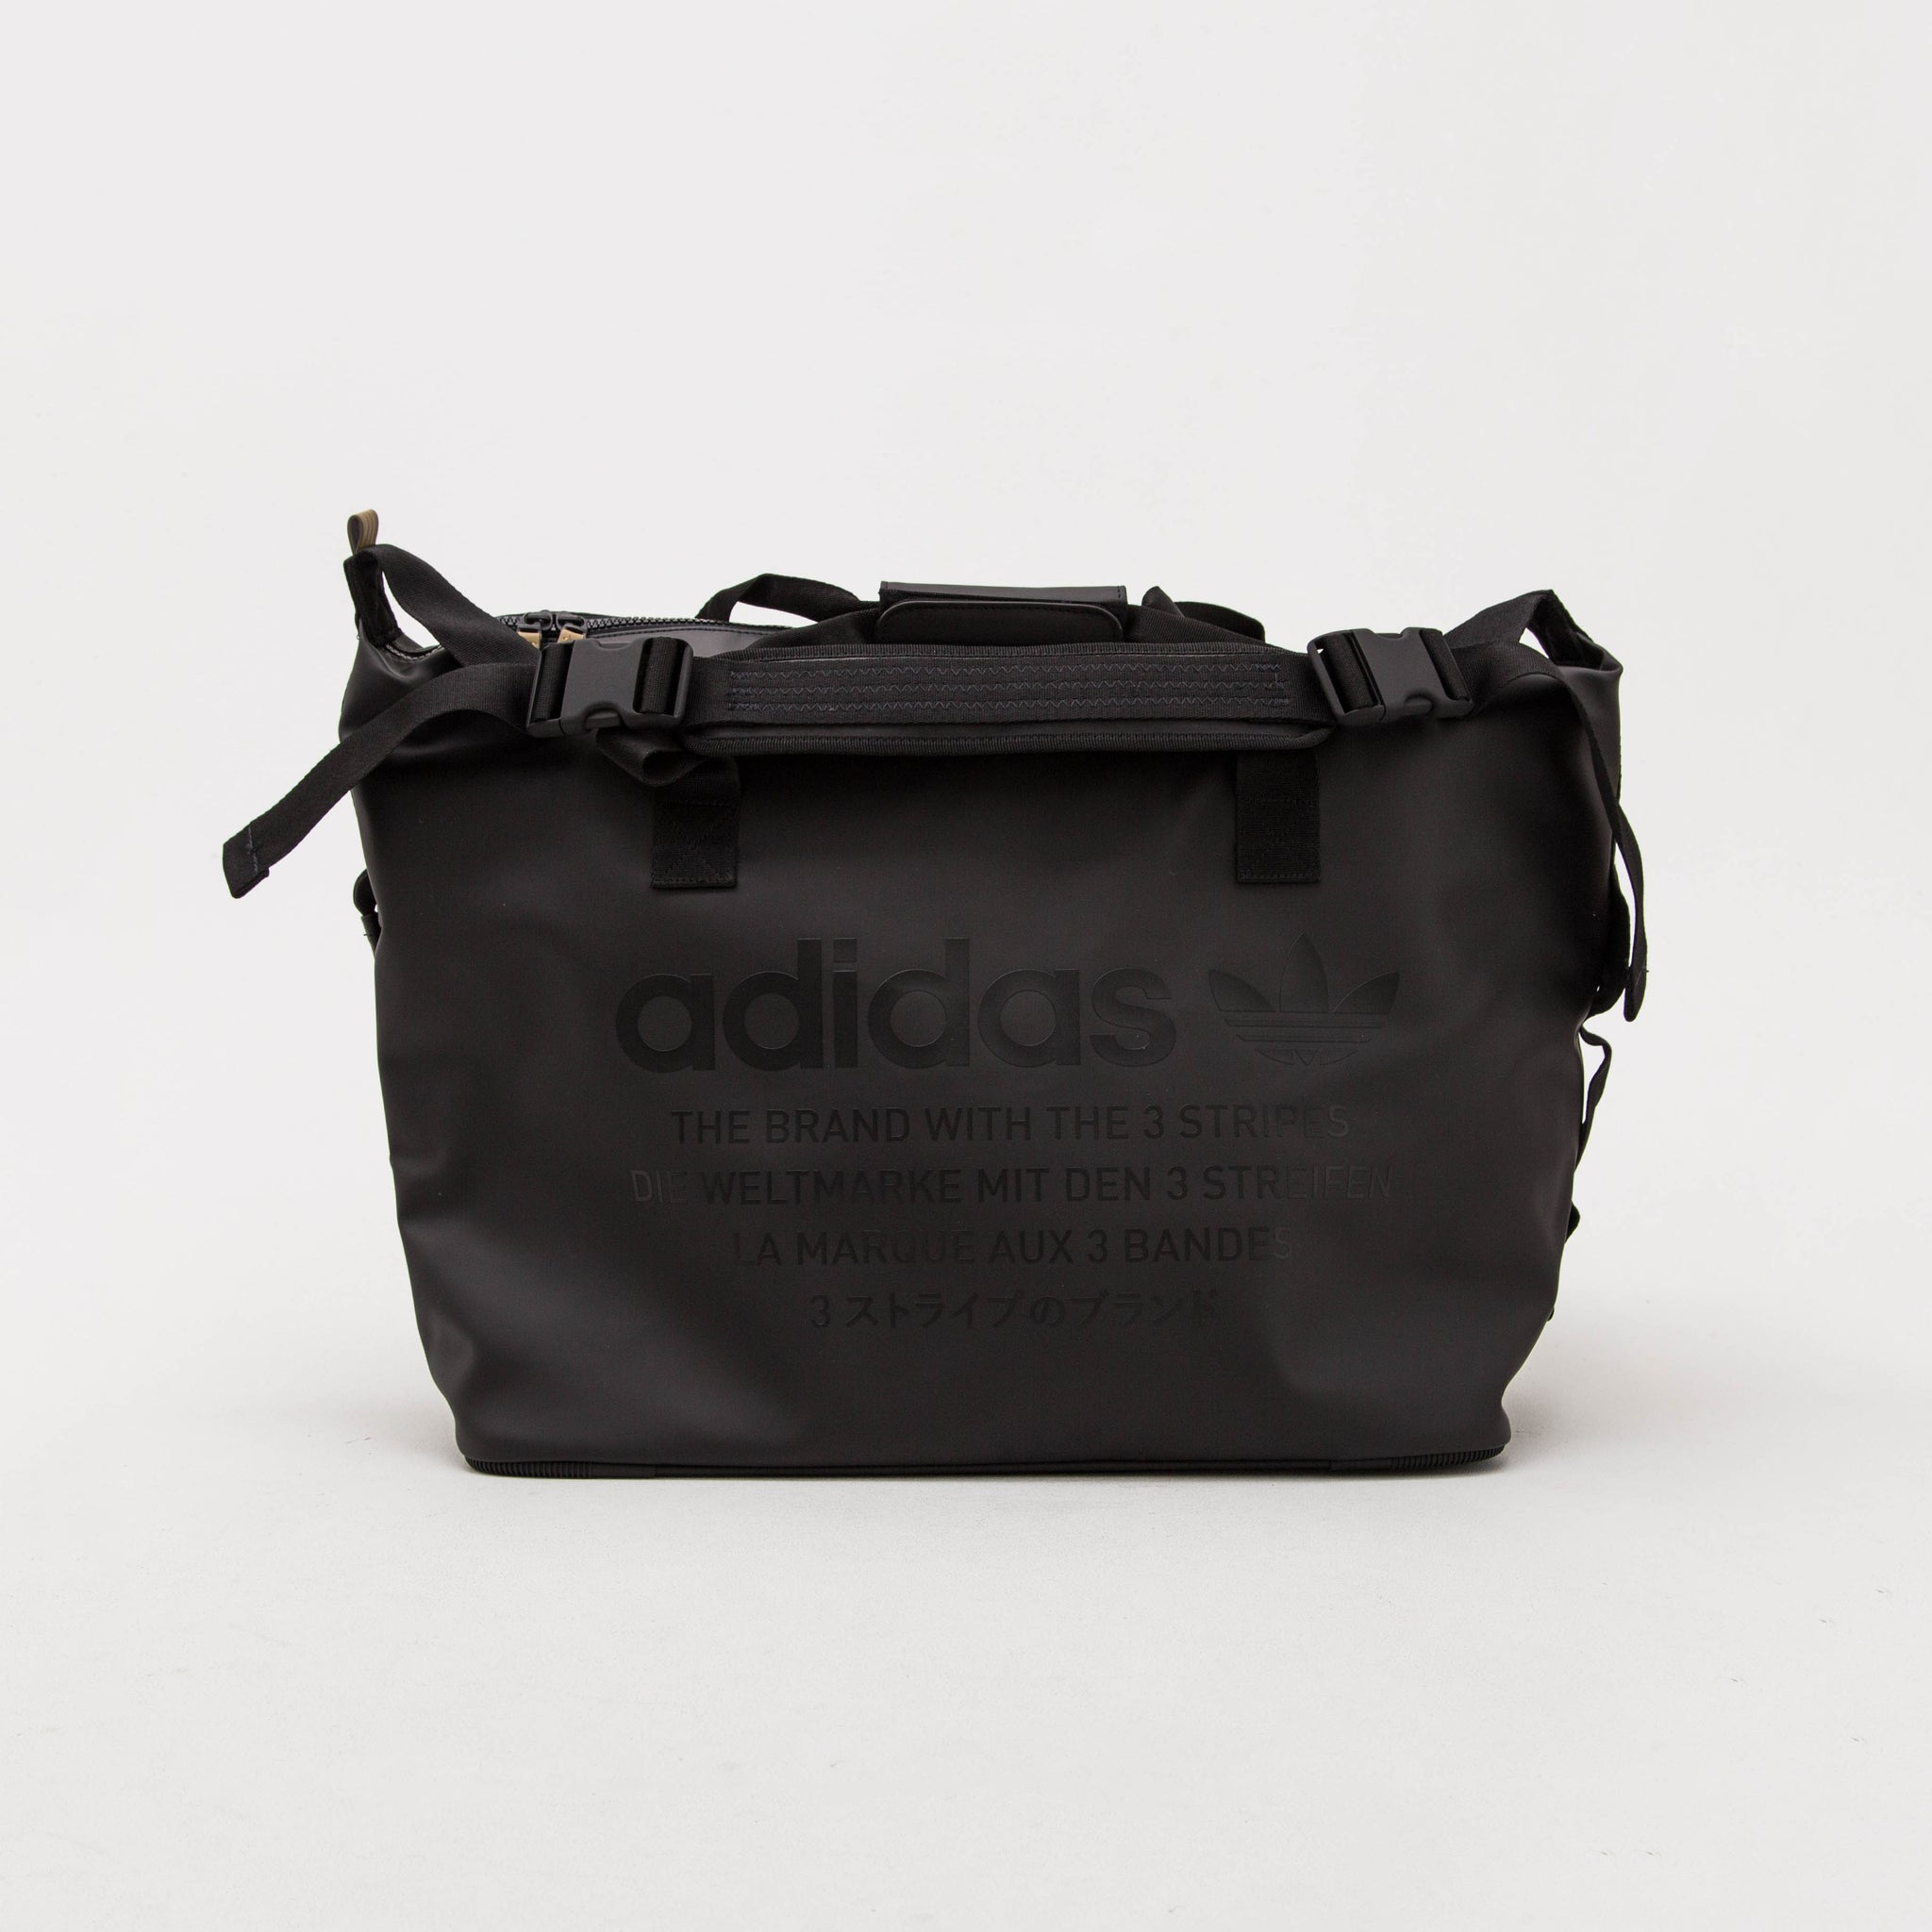 adidas NMD Duffle Bag - Black BR9159 - Front | AStore